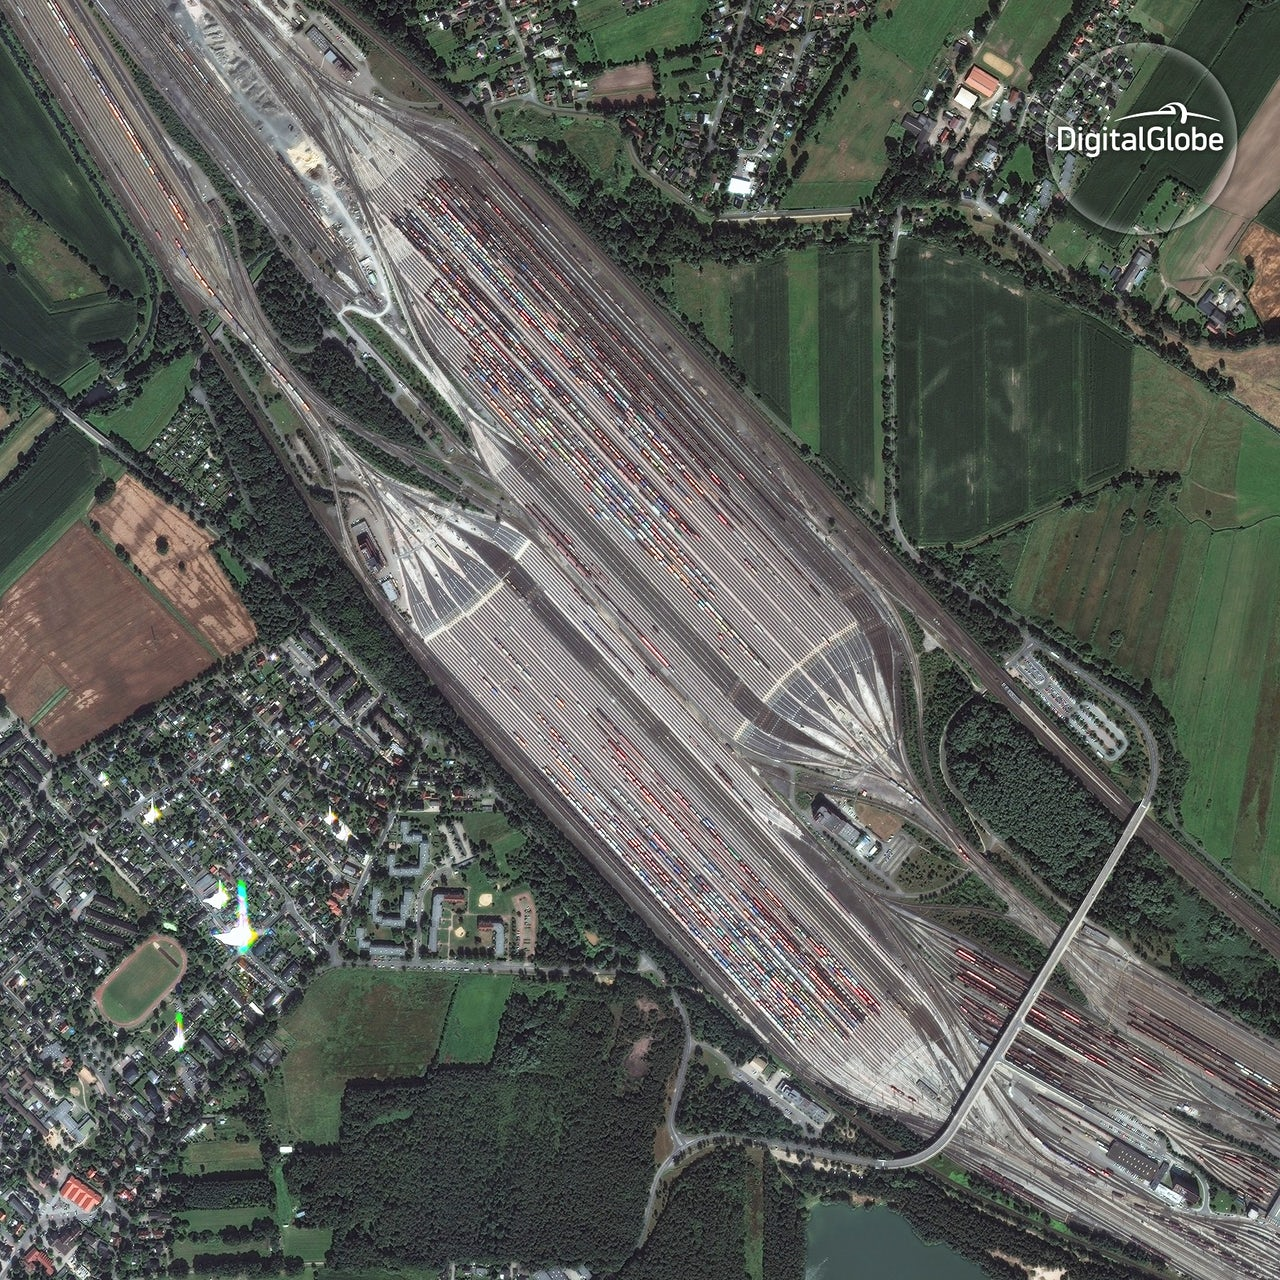 Railyard in Maschen, Germany.